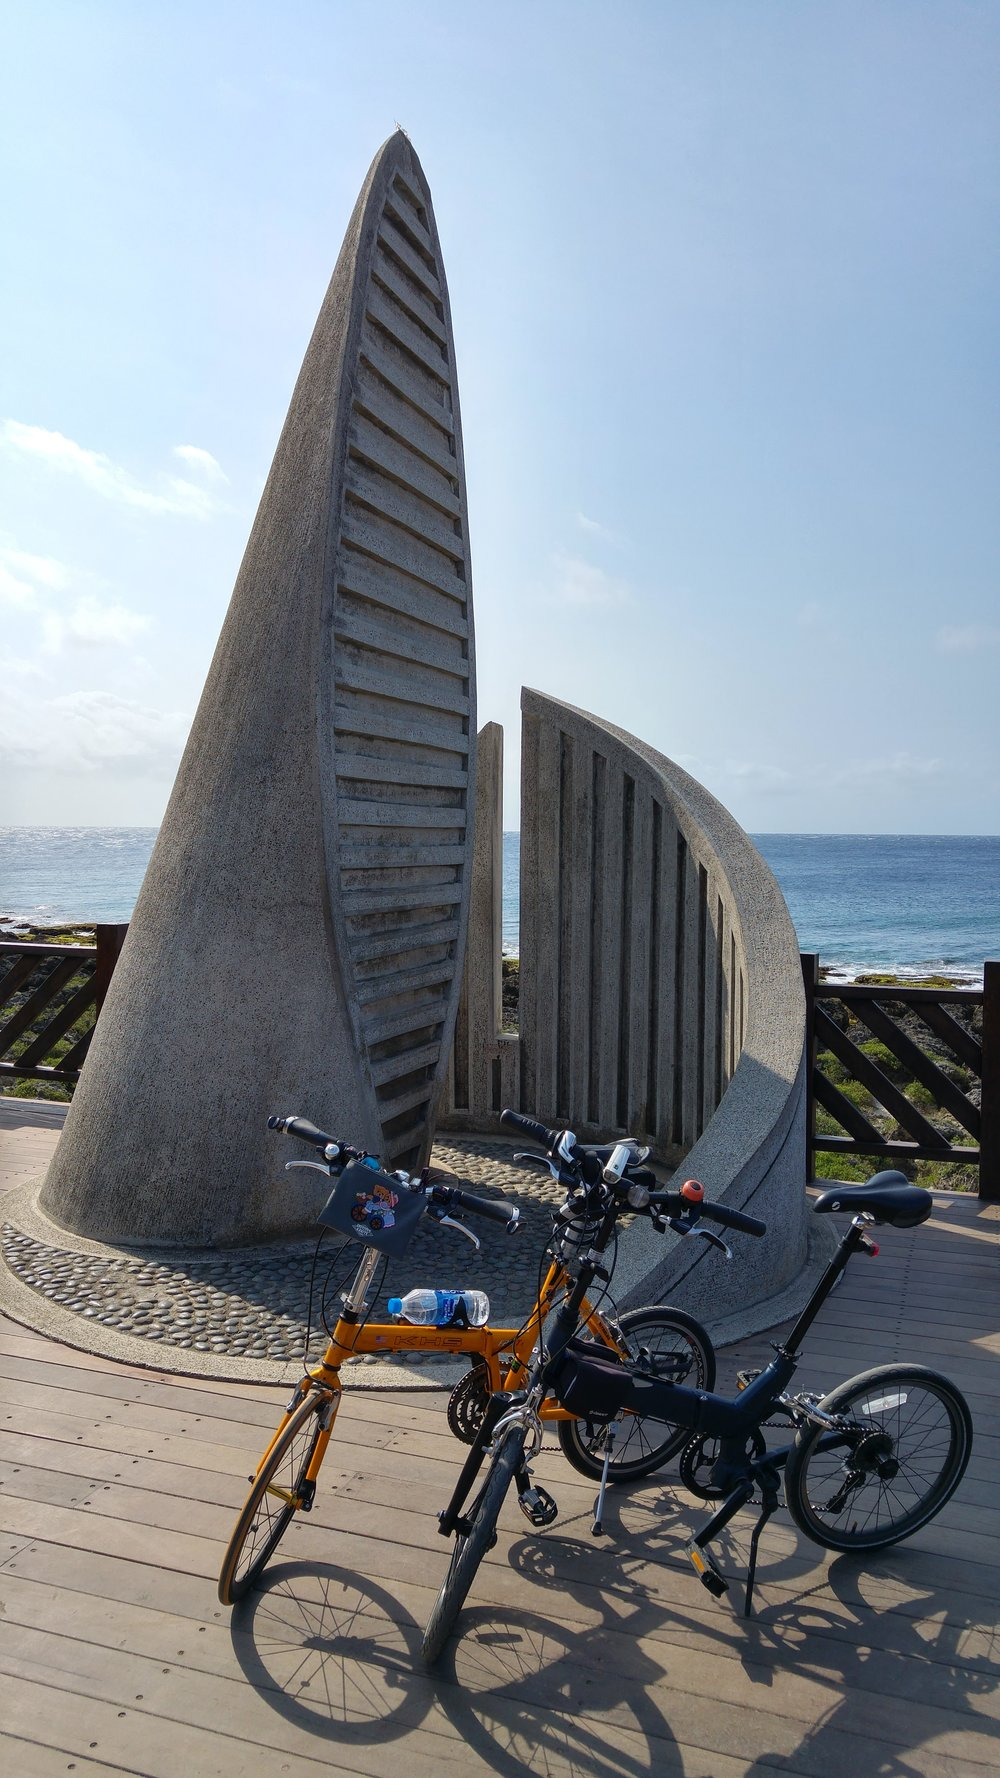 the southern most point of Taiwan is located inside Hengchun Peninsula